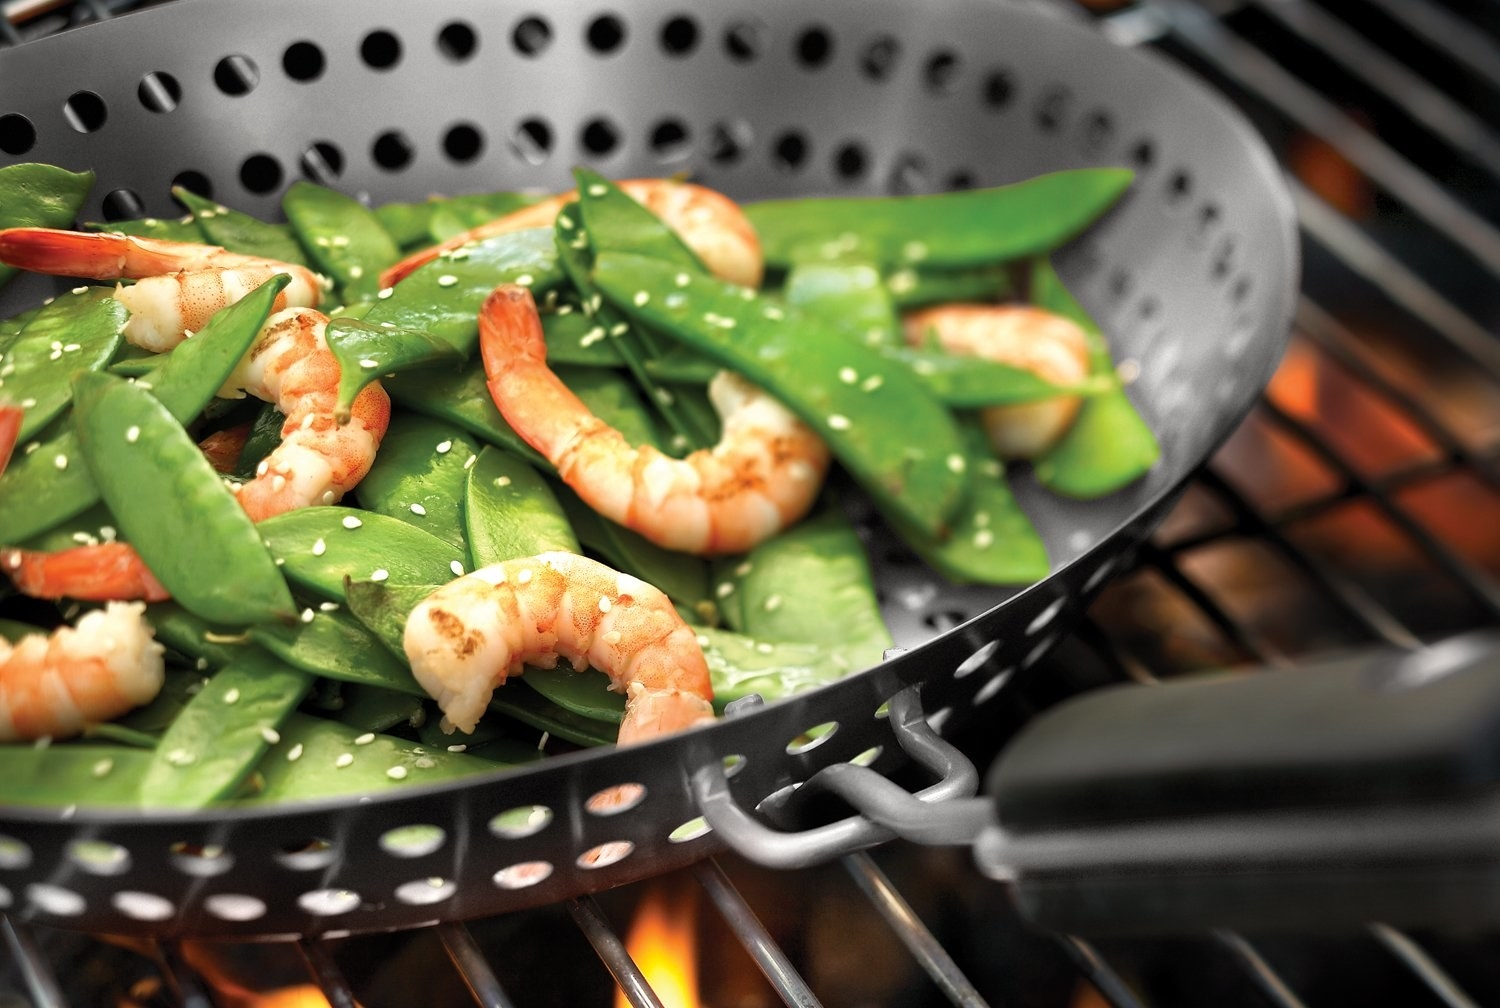 Shrimp and beans being cooked on a grill in a pan with perforations